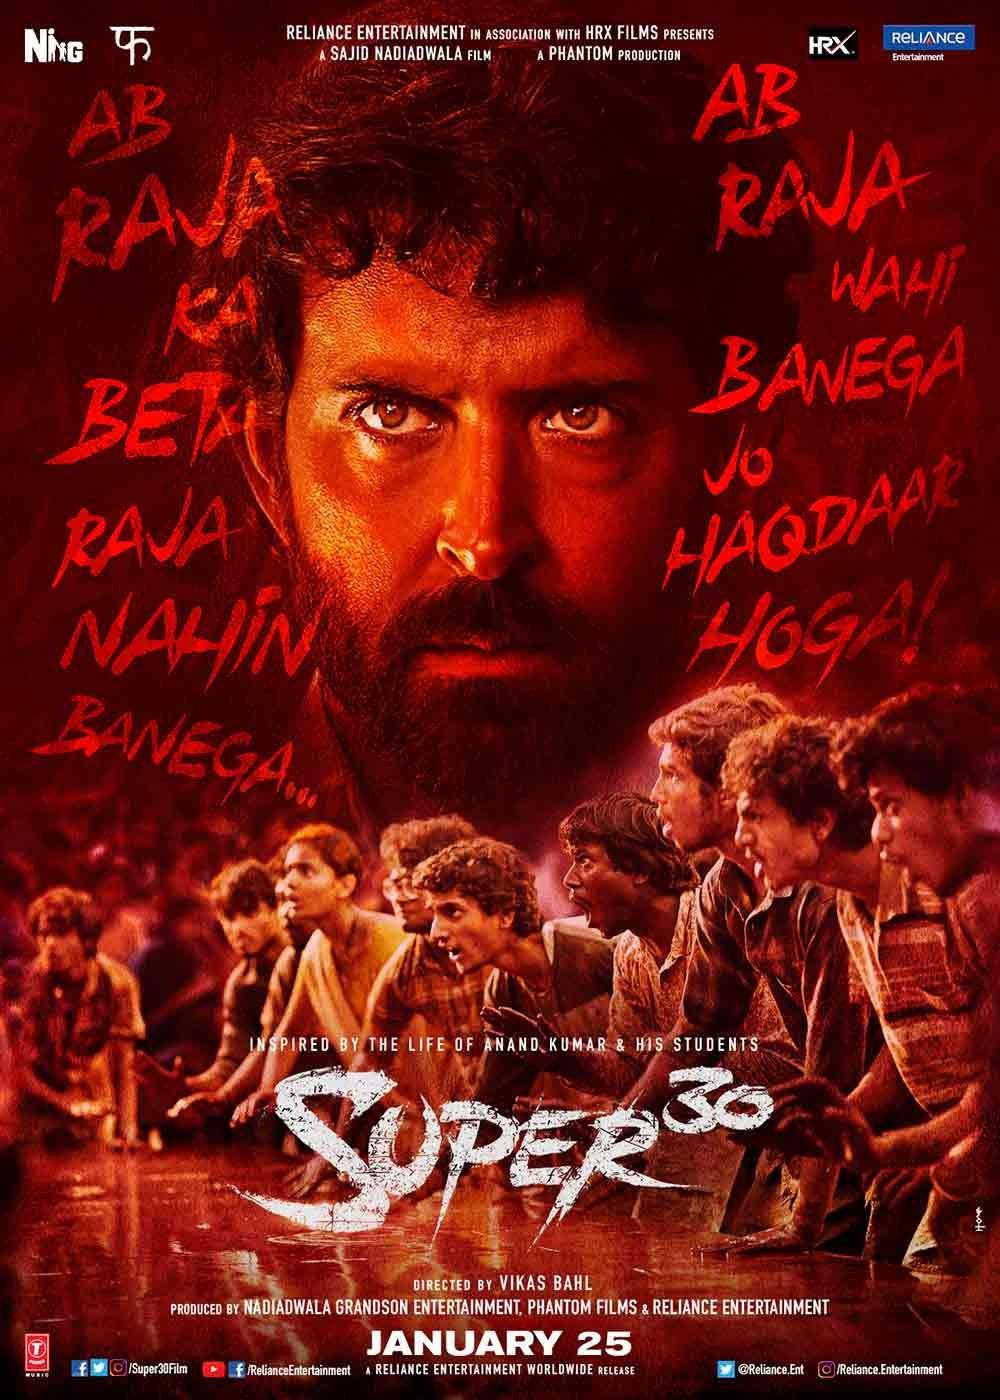 Hrithik Roshan's Super 30 to release on July 12